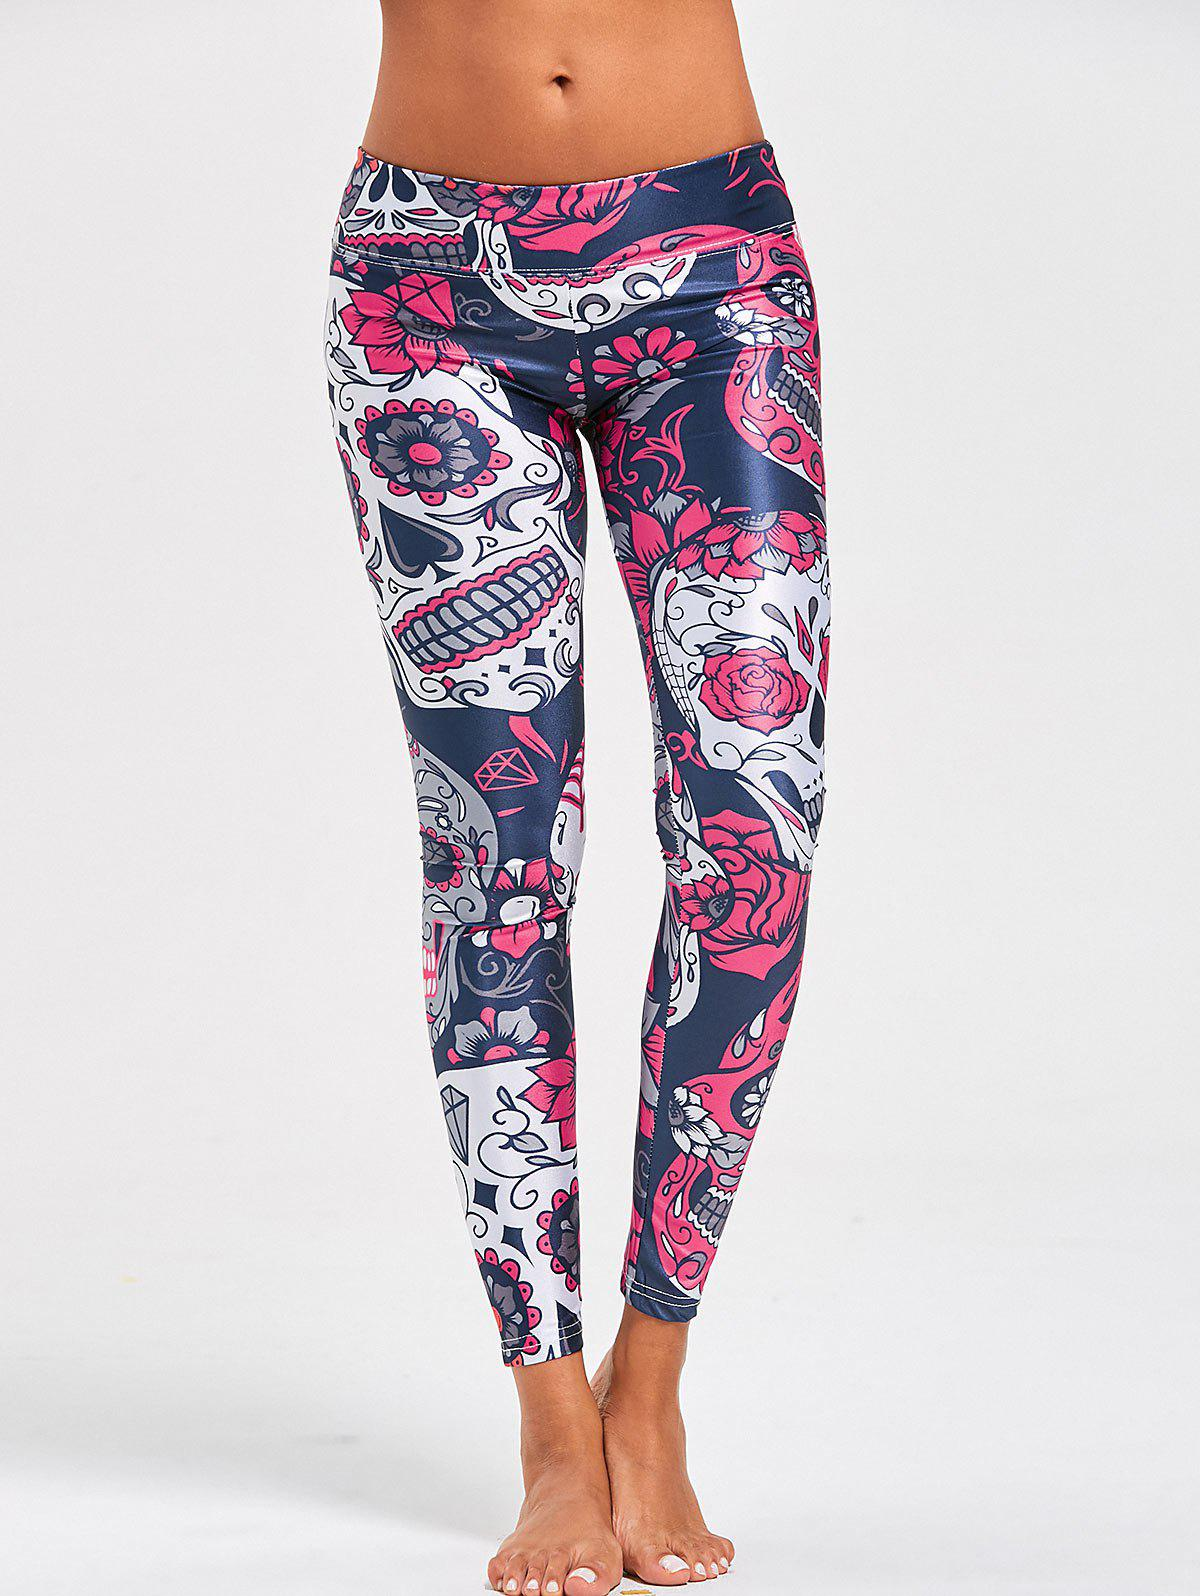 High Waist Halloween Floral Skull Print LeggingsWOMEN<br><br>Size: M; Color: COLORMIX; Style: Casual; Material: Polyester; Waist Type: High; Pattern Type: Floral,Skull; Weight: 0.2200kg; Package Contents: 1 x Leggings;